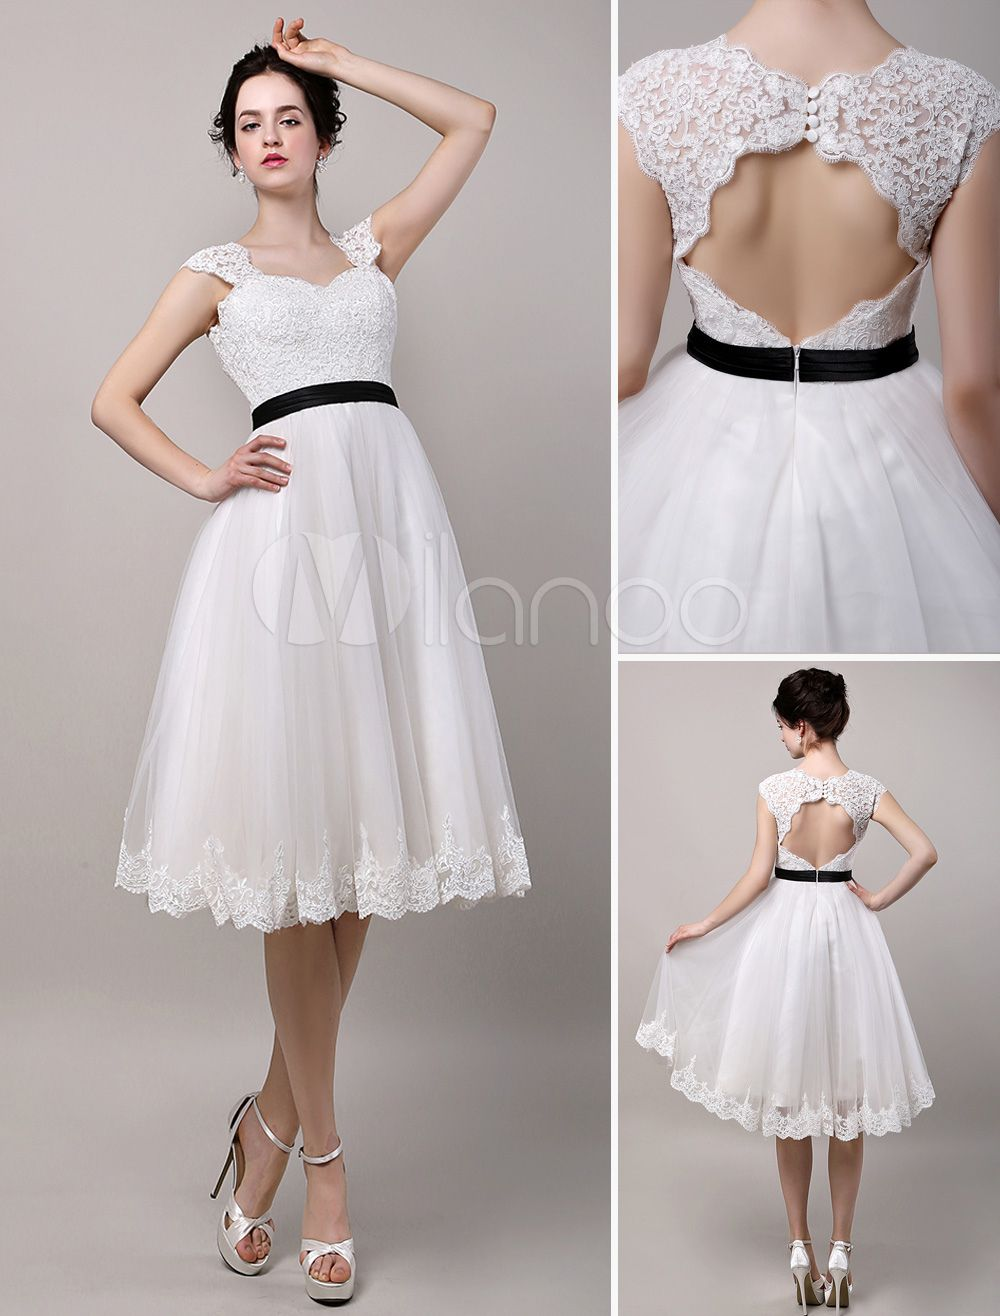 Vintage Inspired Chic Retro Keyhole Back Lace Tulle Tea Length ...